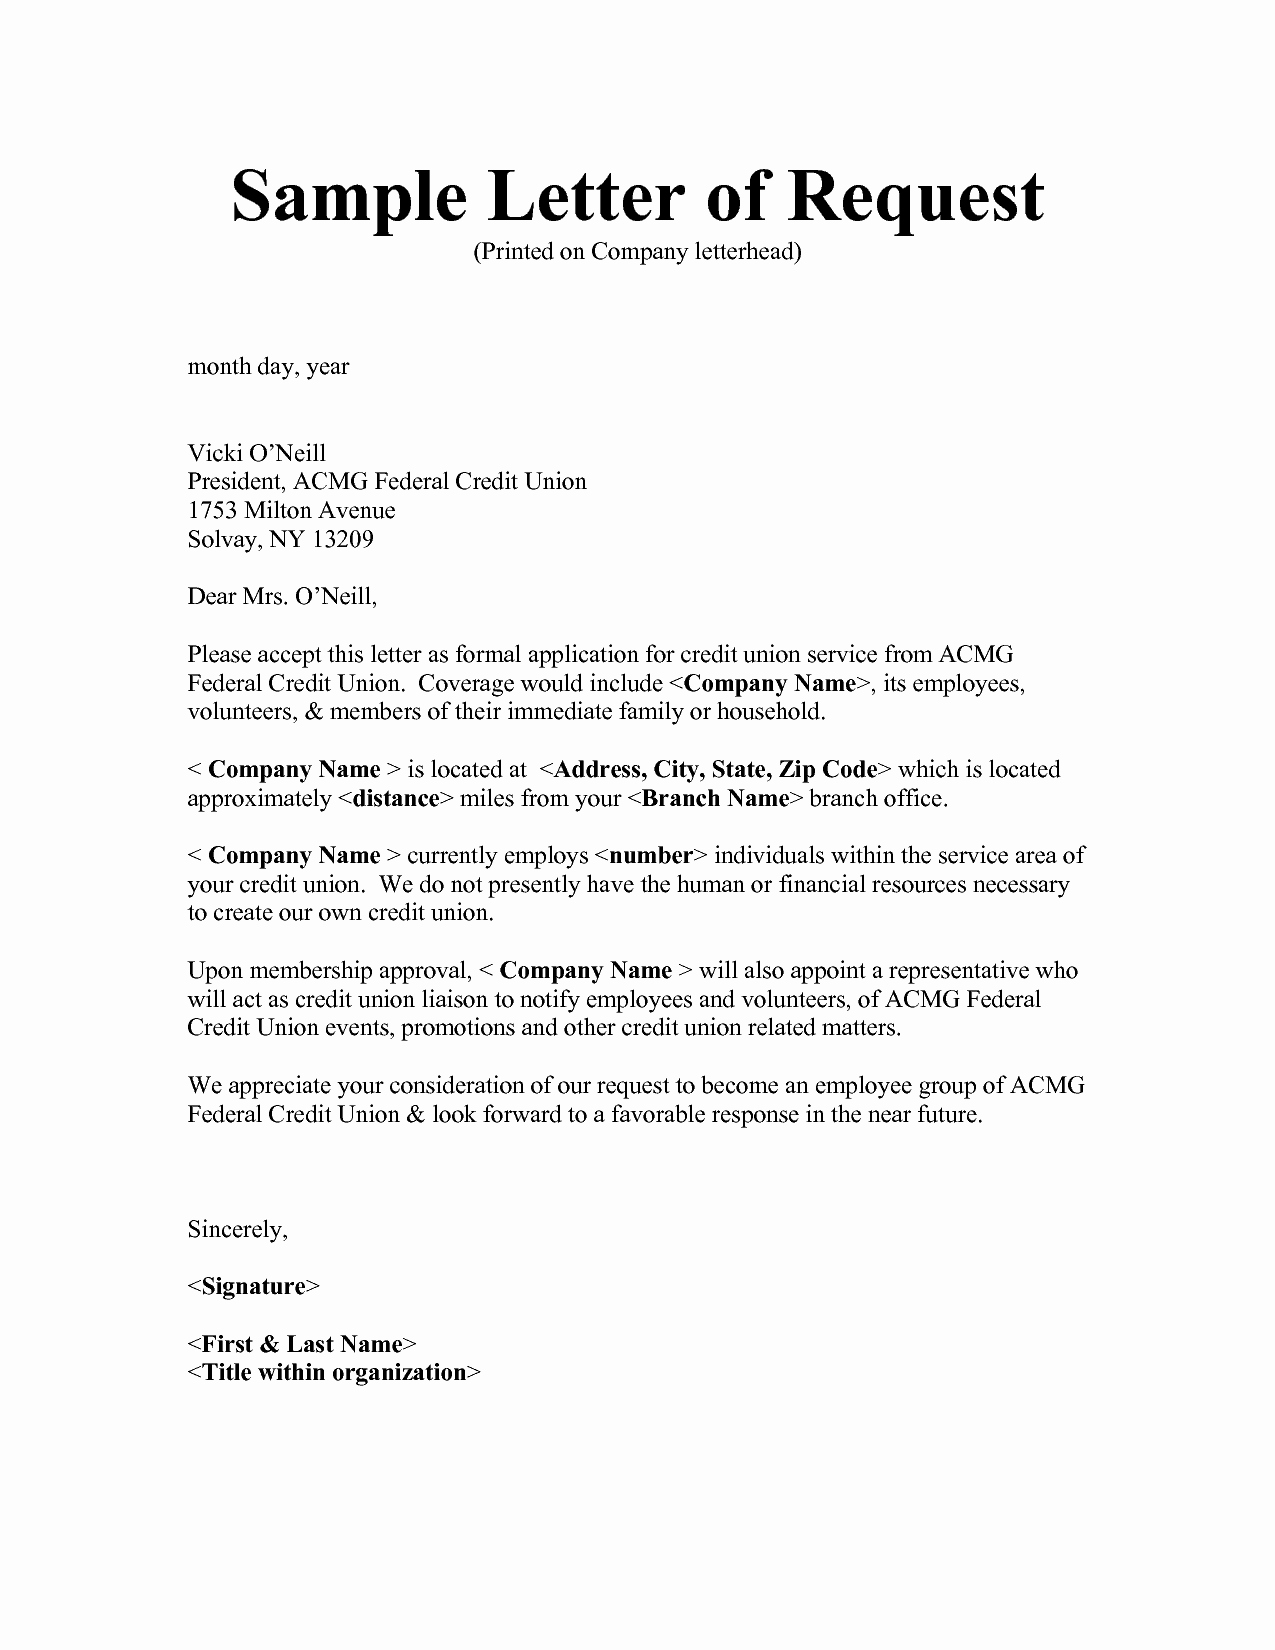 Sample Proposal Cover Letter Fresh Cover Letter for Project Proposal Example Of A Project